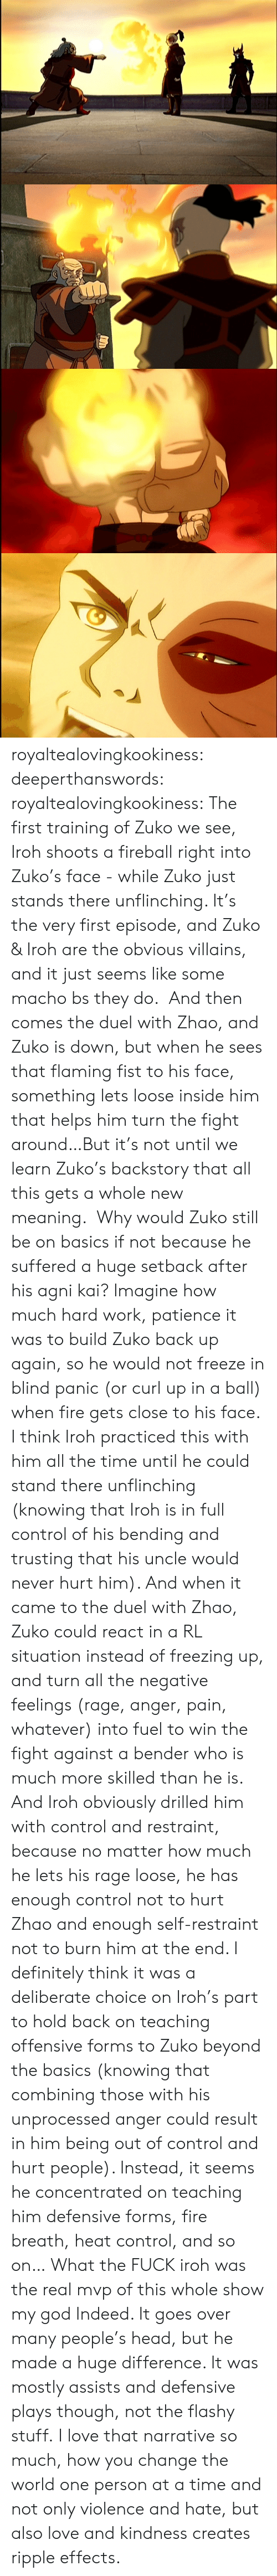 fist: royaltealovingkookiness: deeperthanswords:  royaltealovingkookiness:   The first training of Zuko we see, Iroh shoots a fireball right into Zuko's face - while Zuko just stands there unflinching. It's the very first episode, and Zuko & Iroh are the obvious villains, and it just seems like some macho bs they do.  And then comes the duel with Zhao, and Zuko is down, but when he sees that flaming fist to his face, something lets loose inside him that helps him turn the fight around…But it's not until we learn Zuko's backstory that all this gets a whole new meaning.  Why would Zuko still be on basics if not because he suffered a huge setback after his agni kai? Imagine how much hard work, patience it was to build Zuko back up again, so he would not freeze in blind panic (or curl up in a ball) when fire gets close to his face. I think Iroh practiced this with him all the time until he could stand there unflinching (knowing that Iroh is in full control of his bending and trusting that his uncle would never hurt him). And when it came to the duel with Zhao, Zuko could react in a RL situation instead of freezing up, and turn all the negative feelings (rage, anger, pain, whatever) into fuel to win the fight against a bender who is much more skilled than he is.  And Iroh obviously drilled him with control and restraint, because no matter how much he lets his rage loose, he has enough control not to hurt Zhao and enough self-restraint not to burn him at the end. I definitely think it was a deliberate choice on Iroh's part to hold back on teaching offensive forms to Zuko beyond the basics (knowing that combining those with his unprocessed anger could result in him being out of control and hurt people). Instead, it seems he concentrated on teaching him defensive forms, fire breath, heat control, and so on…   What the FUCK iroh was the real mvp of this whole show my god  Indeed. It goes over many people's head, but he made a huge difference. It was mostly assists and defensive plays though, not the flashy stuff. I love that narrative so much, how you change the world one person at a time and not only violence and hate, but also love and kindness creates ripple effects.